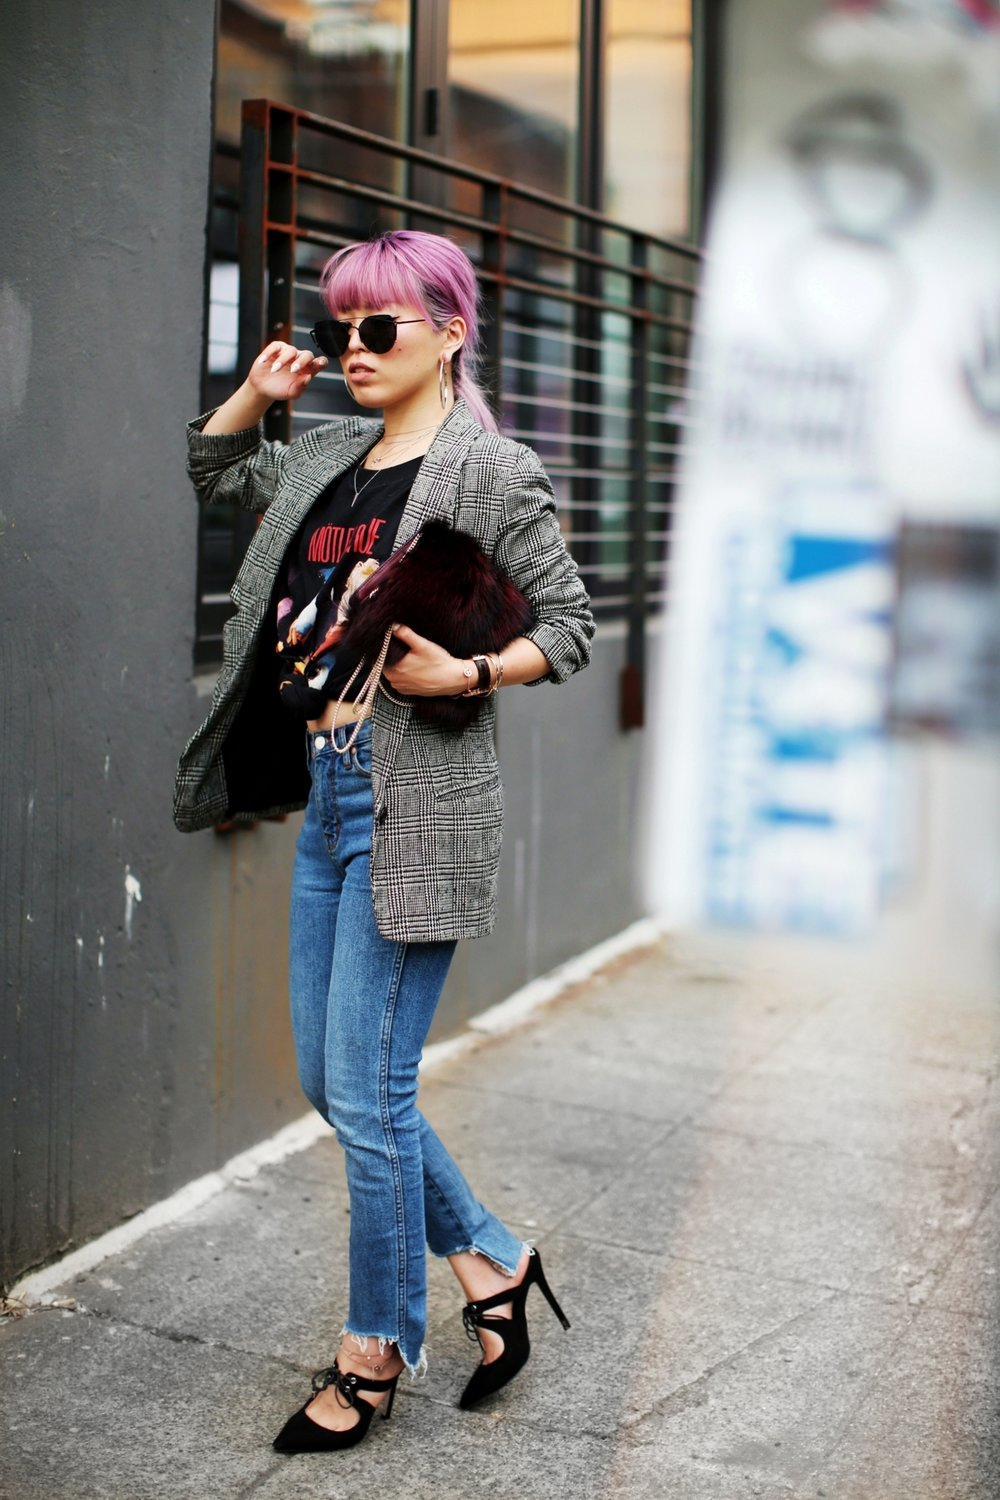 Nordstrom Plaid Blazer_Vintage Rockband Tee_Free People High Waisted Jeans_Daniel Wellington Watch_ASOS Black Mules_DVF Fur Bag_Pink Hair_Aika's Love Closet_Seattle Fashion Style Blogger_Japanese